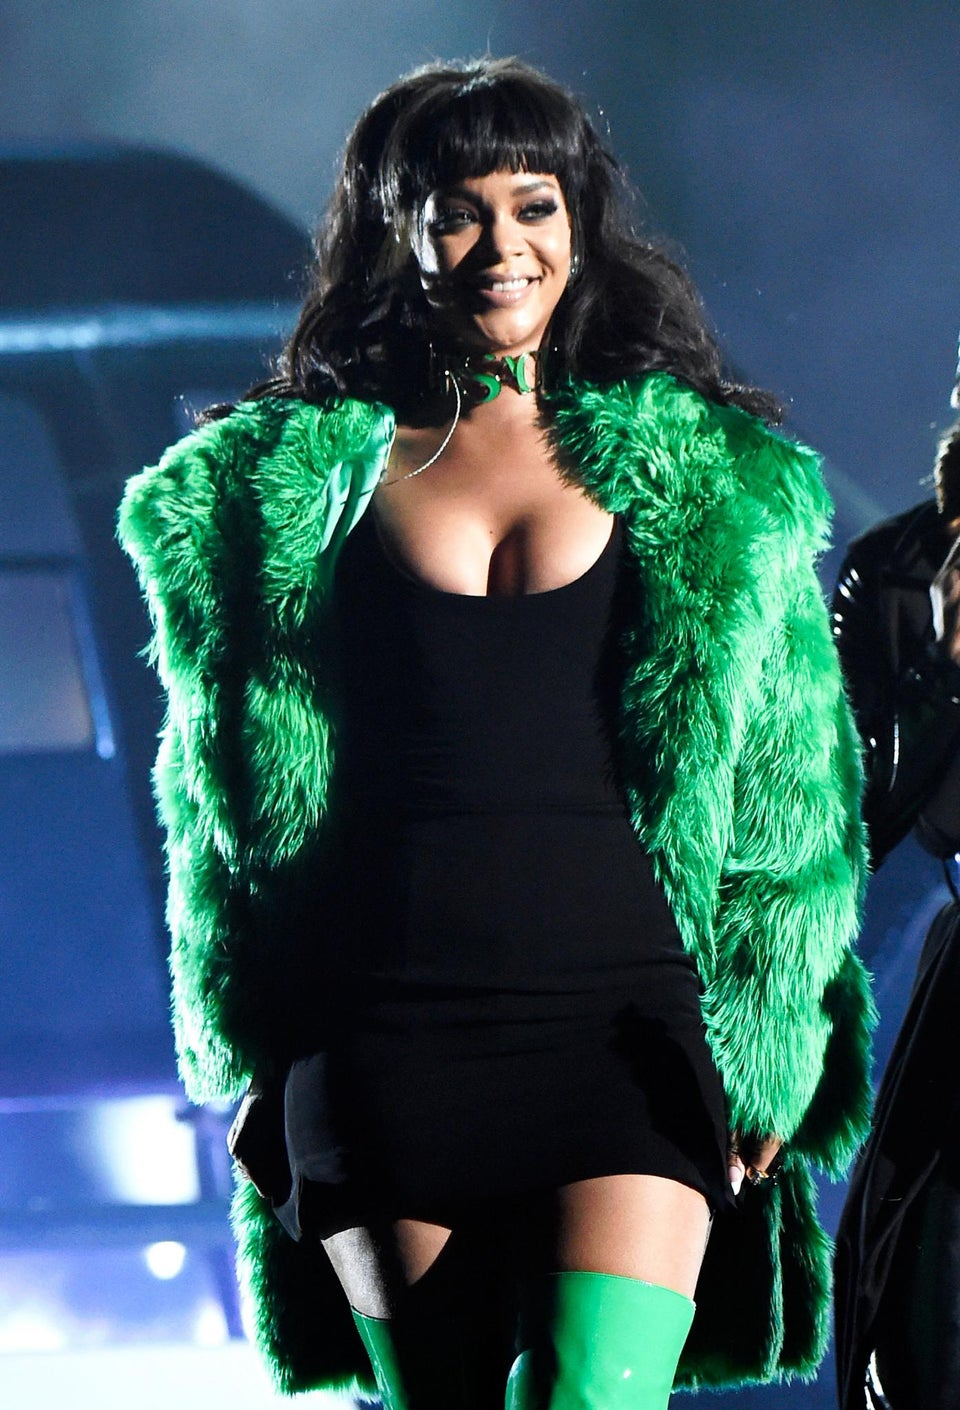 Rihanna Ties with Michael Jackson for Third-Most Top Tens